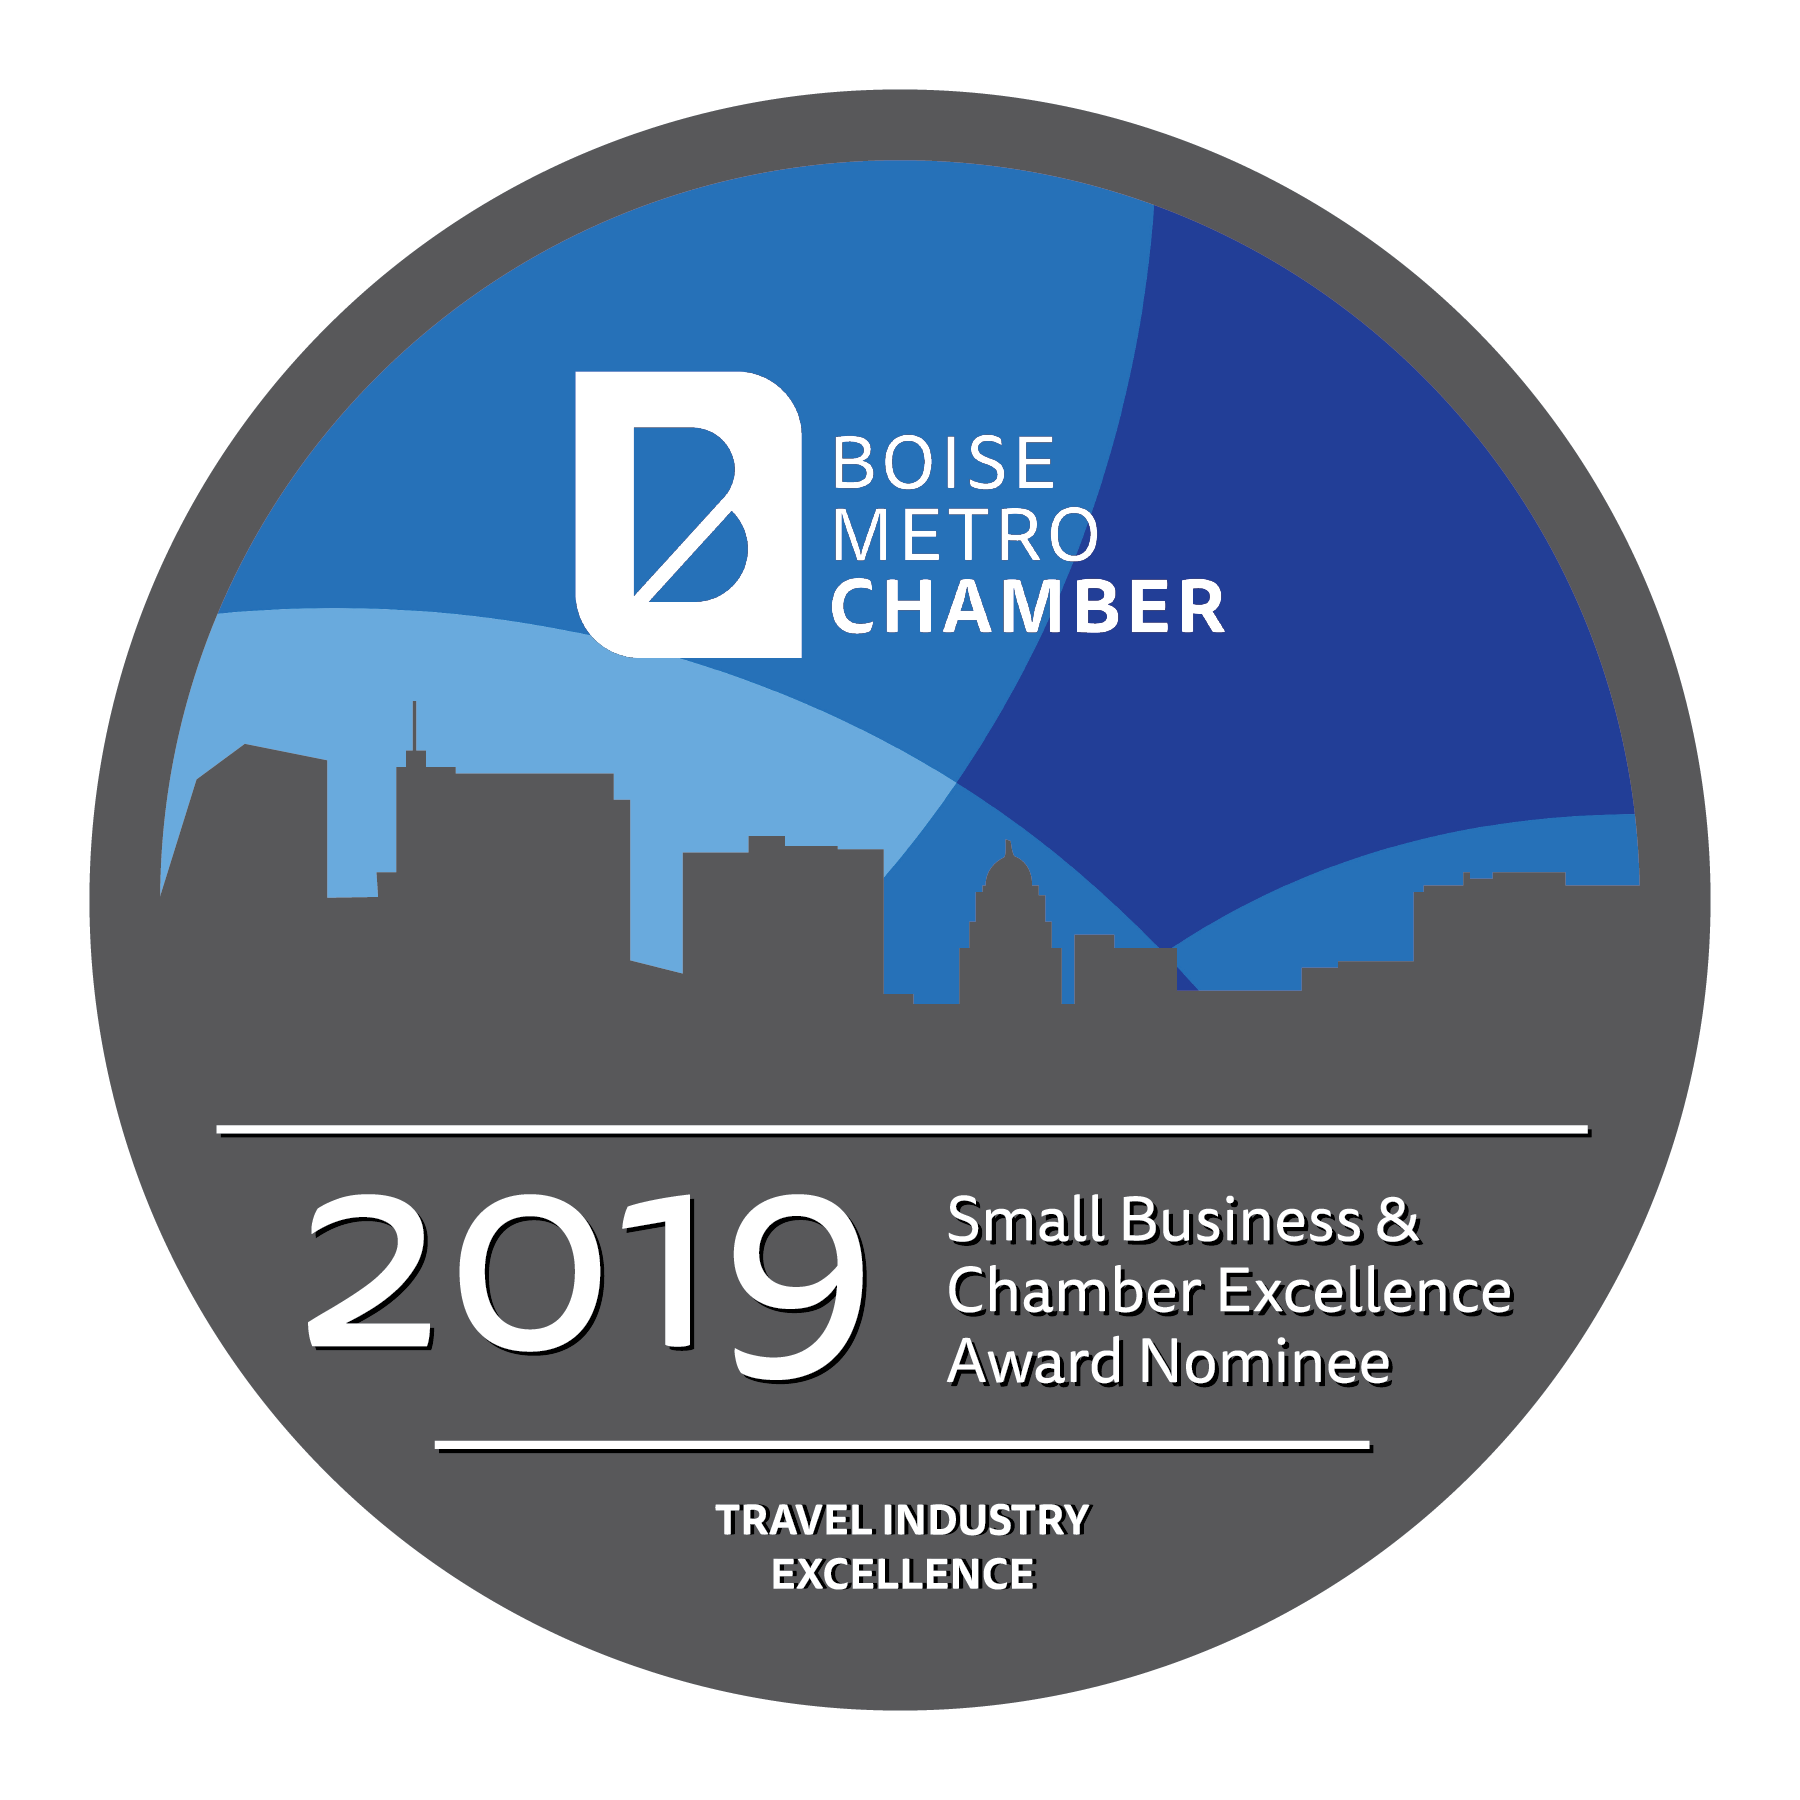 2019 Small Biz Award Badge_Nominee_Travel Industry-01.png